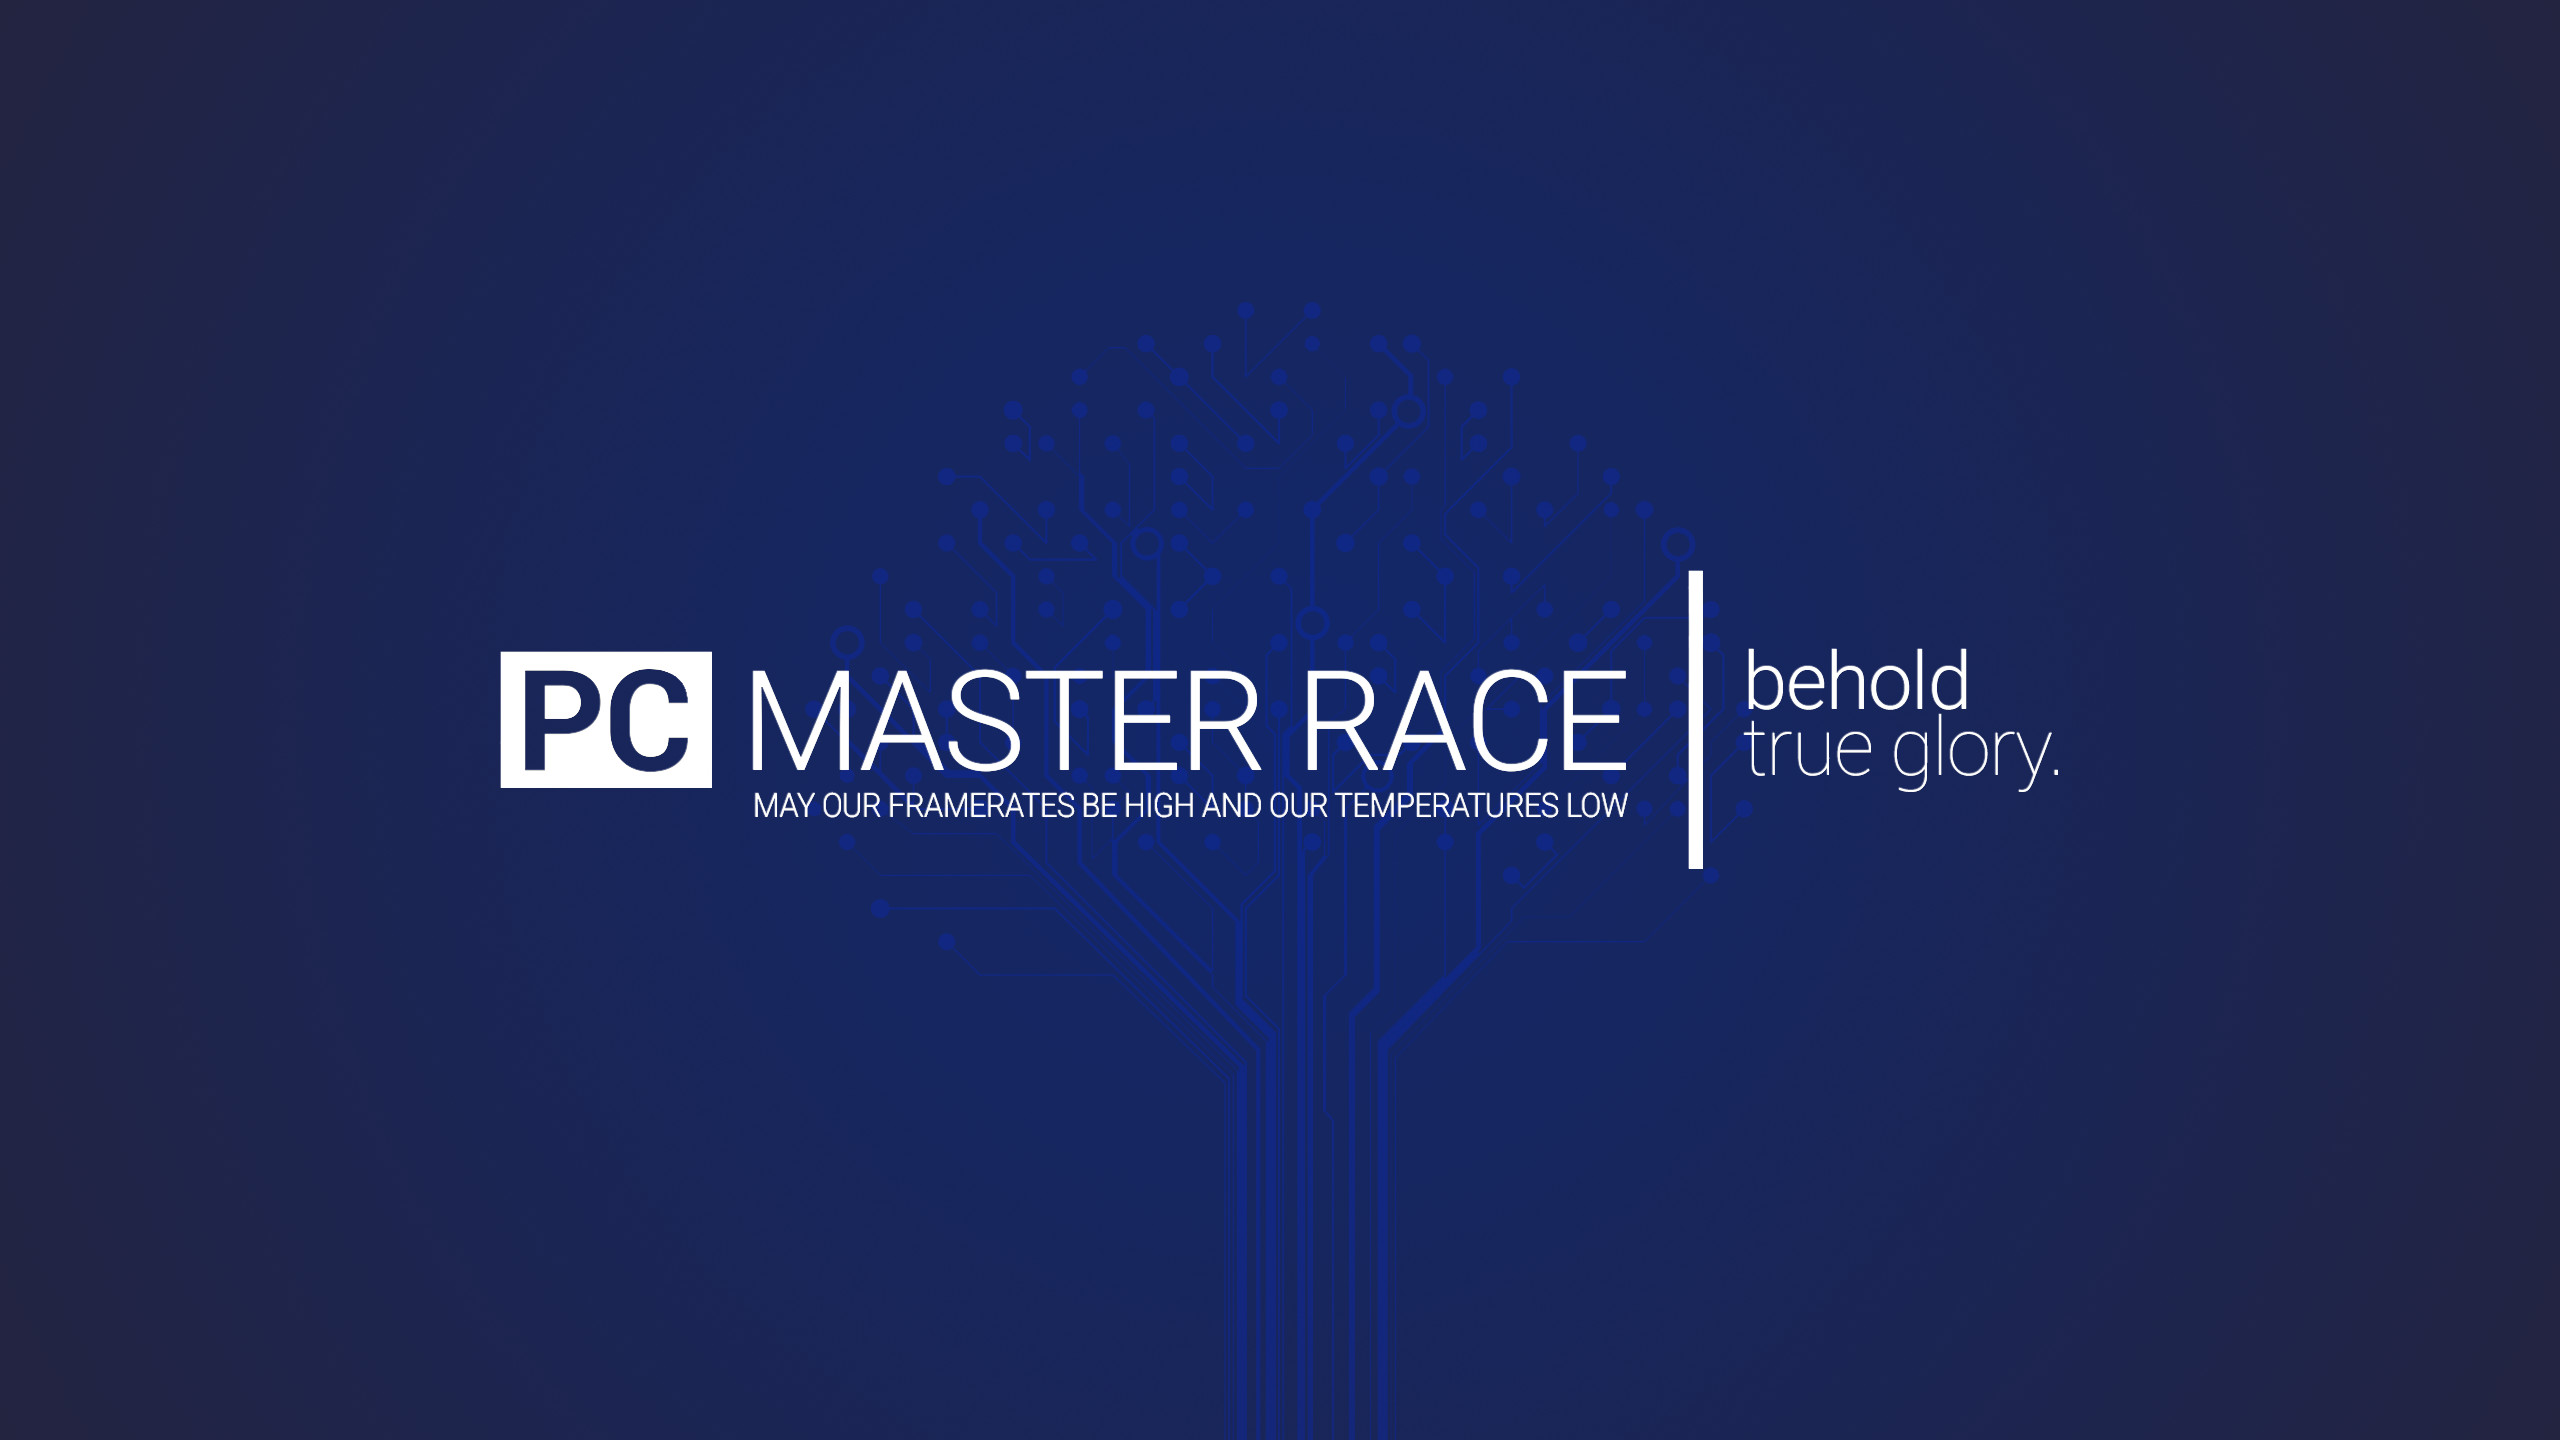 Pc Master Race 4k Wallpaper Posted By Christopher Thompson